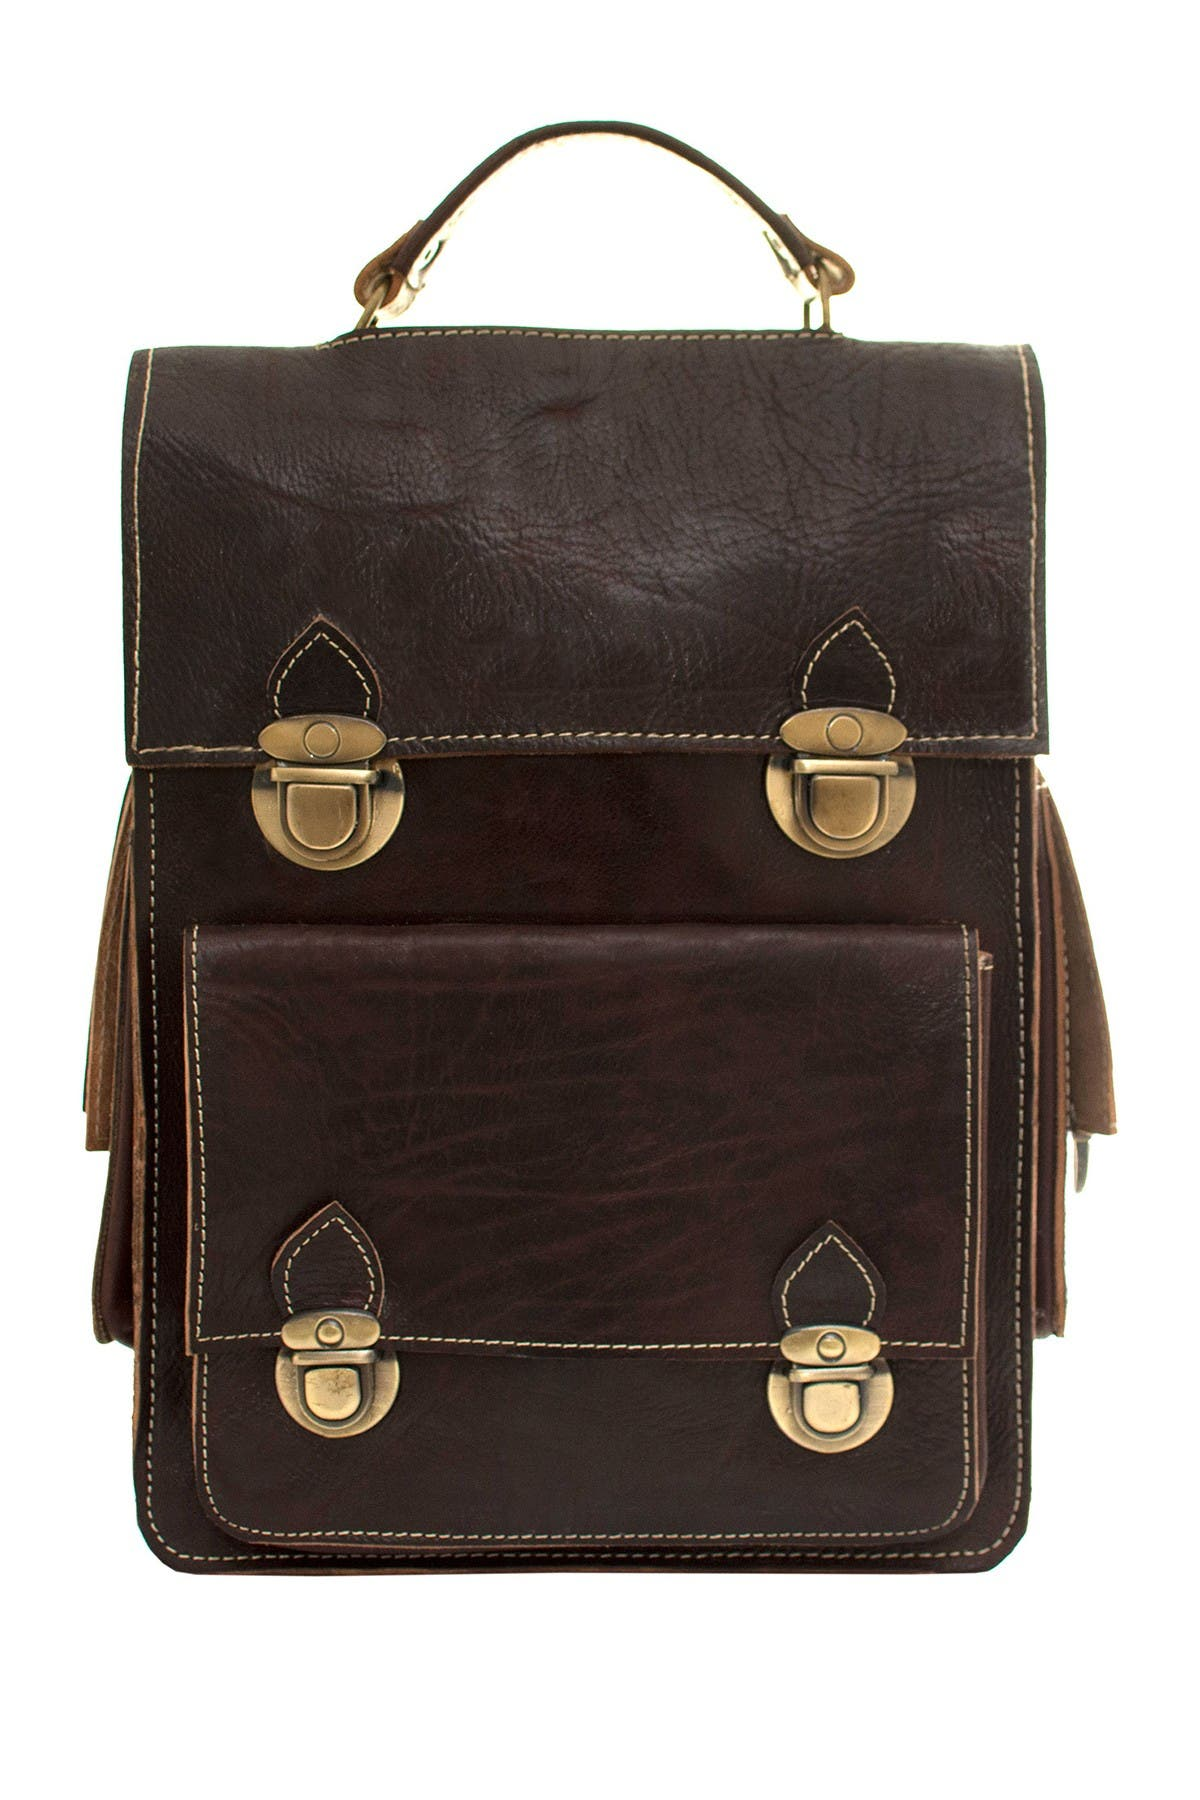 Image of Vintage Addiction Heritage Leather Convertible Bag